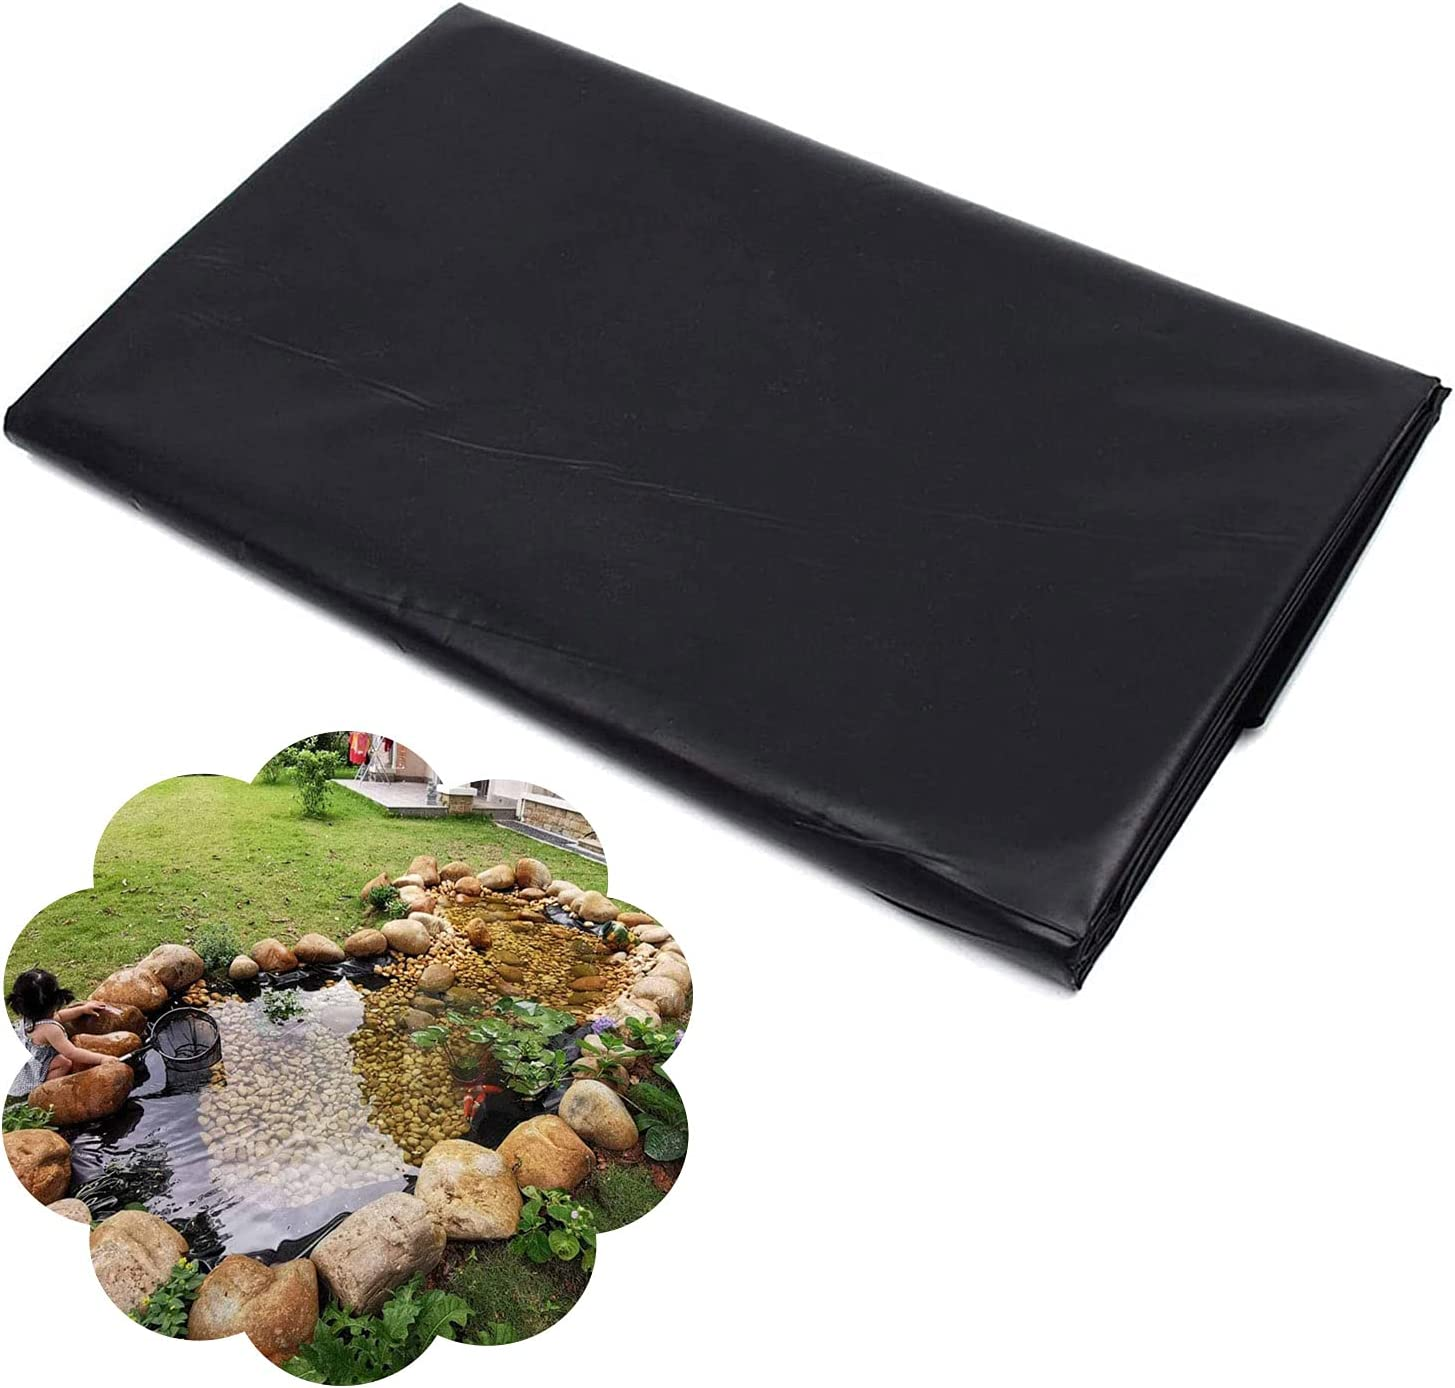 YANYAN Small Pond Liner 4x4ft Pond Underlayment HDPE Pond Liner 7.9mil Thick Pond Skins Pond Liner Rubber Pond Liner for Fish Ponds,Water Features,Fountains,Waterfall and Water Gardens